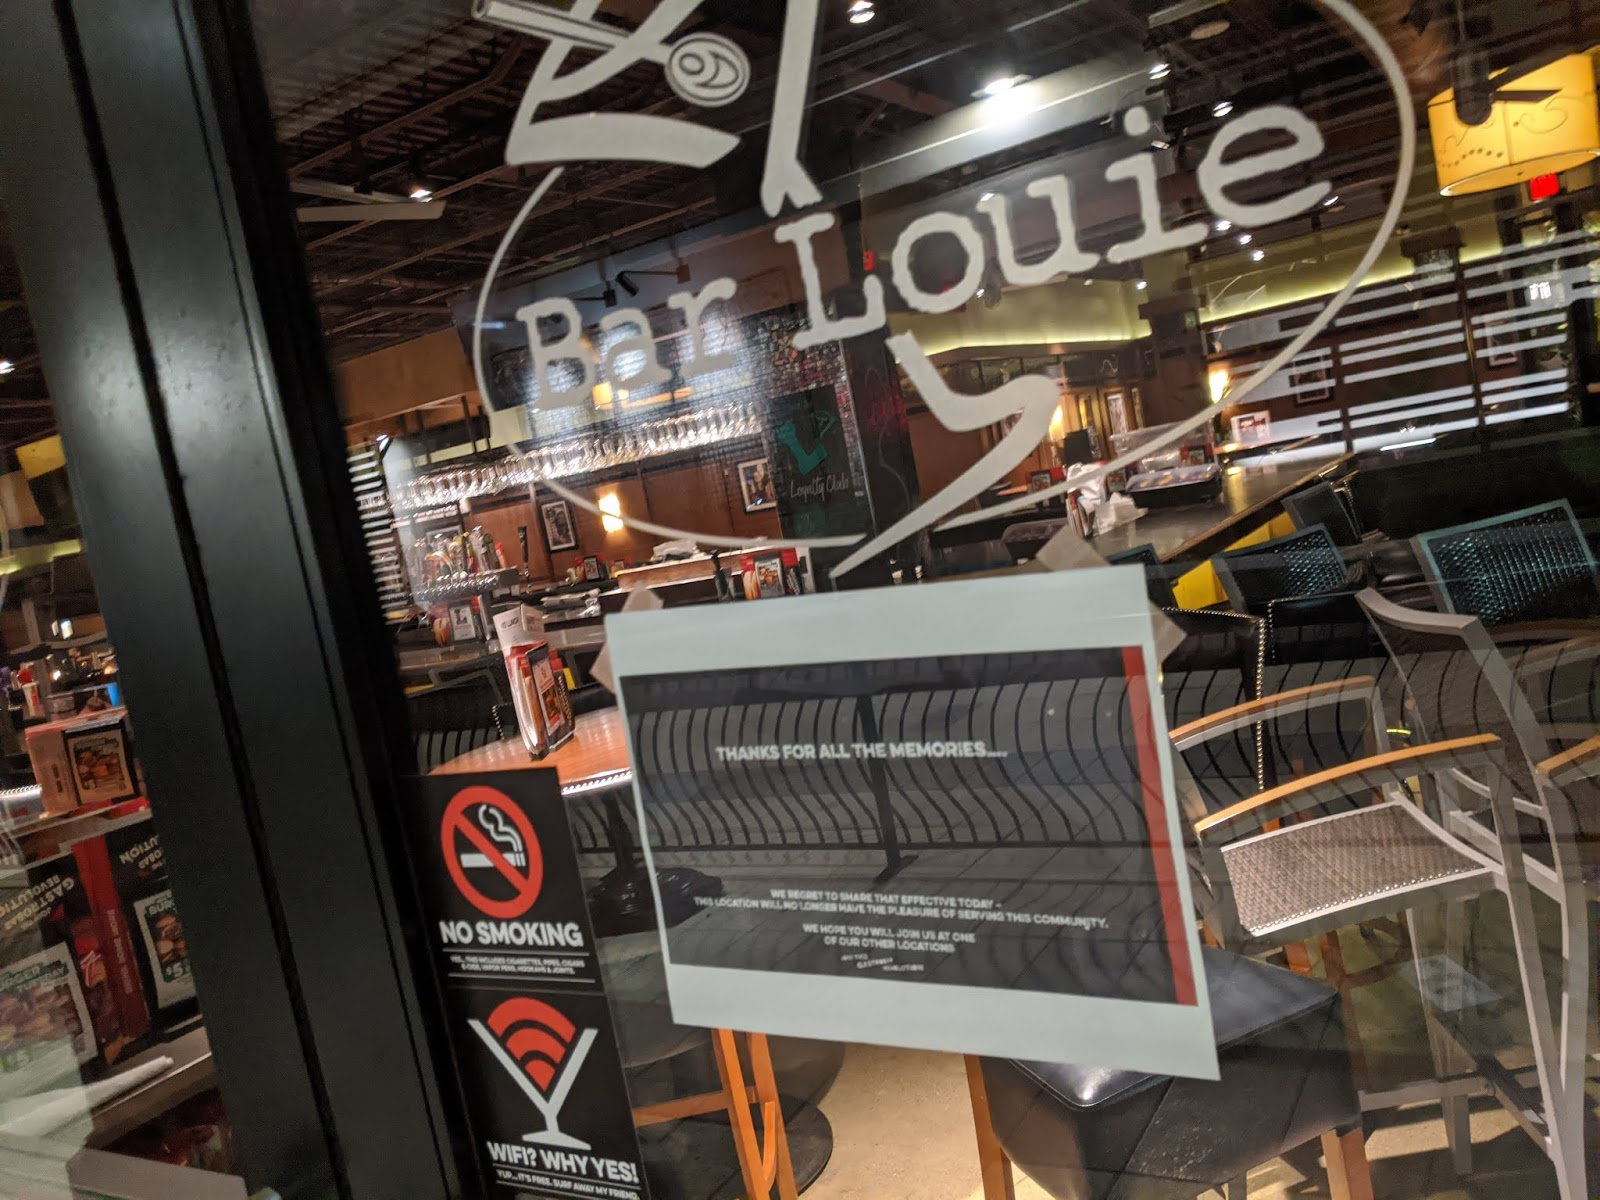 Bar Louie in Strongsville abruptly closes